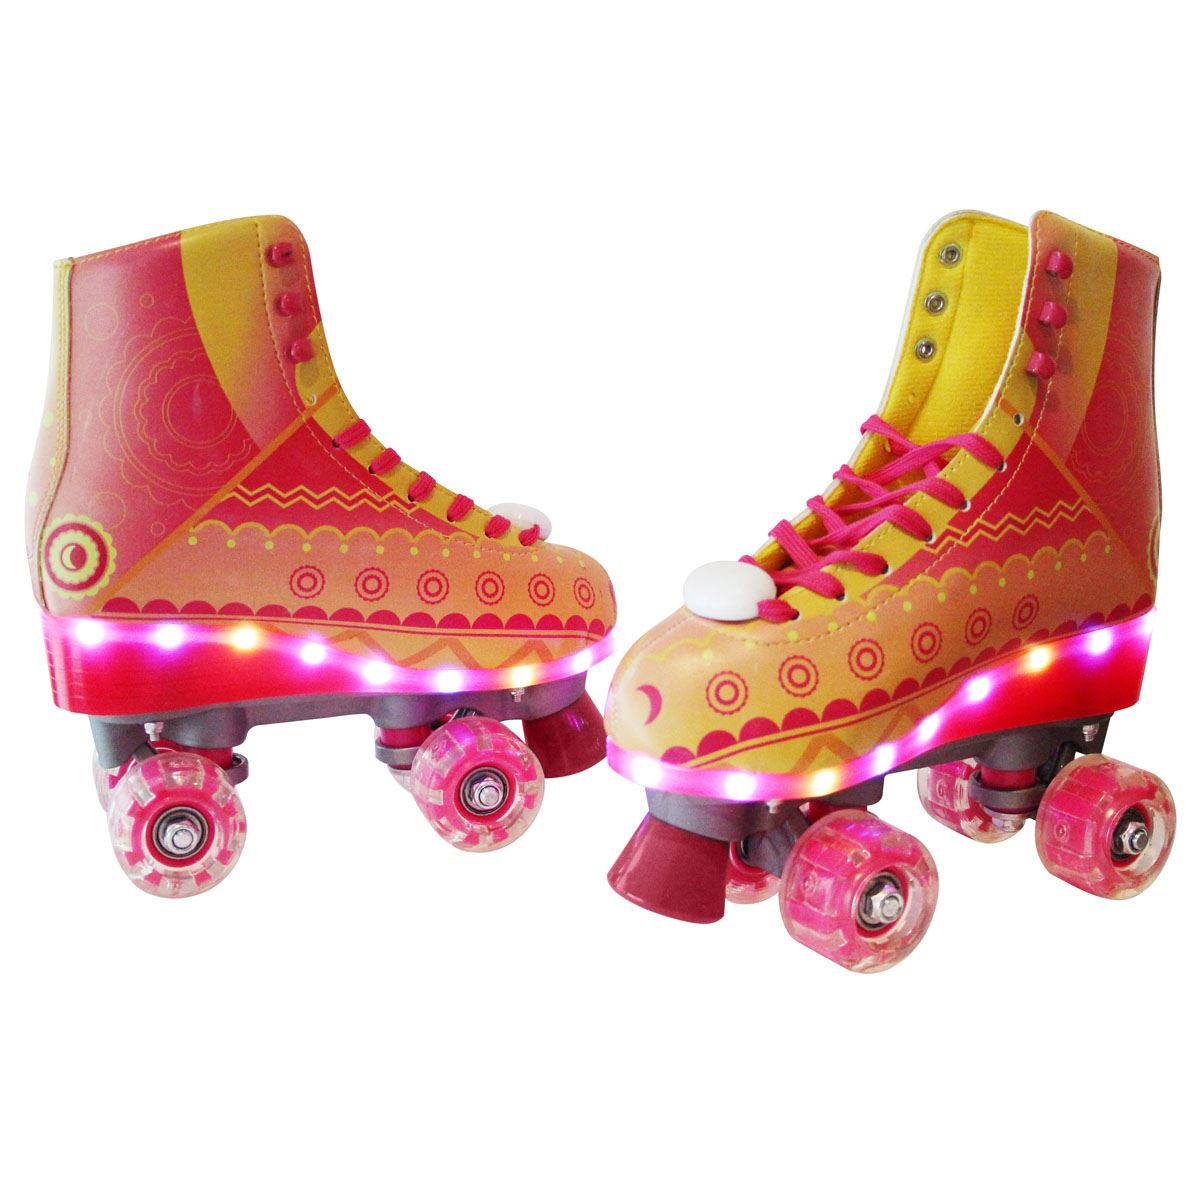 "Patines 3.0 Light Up ""Rayo de Sol"" Talla -24"